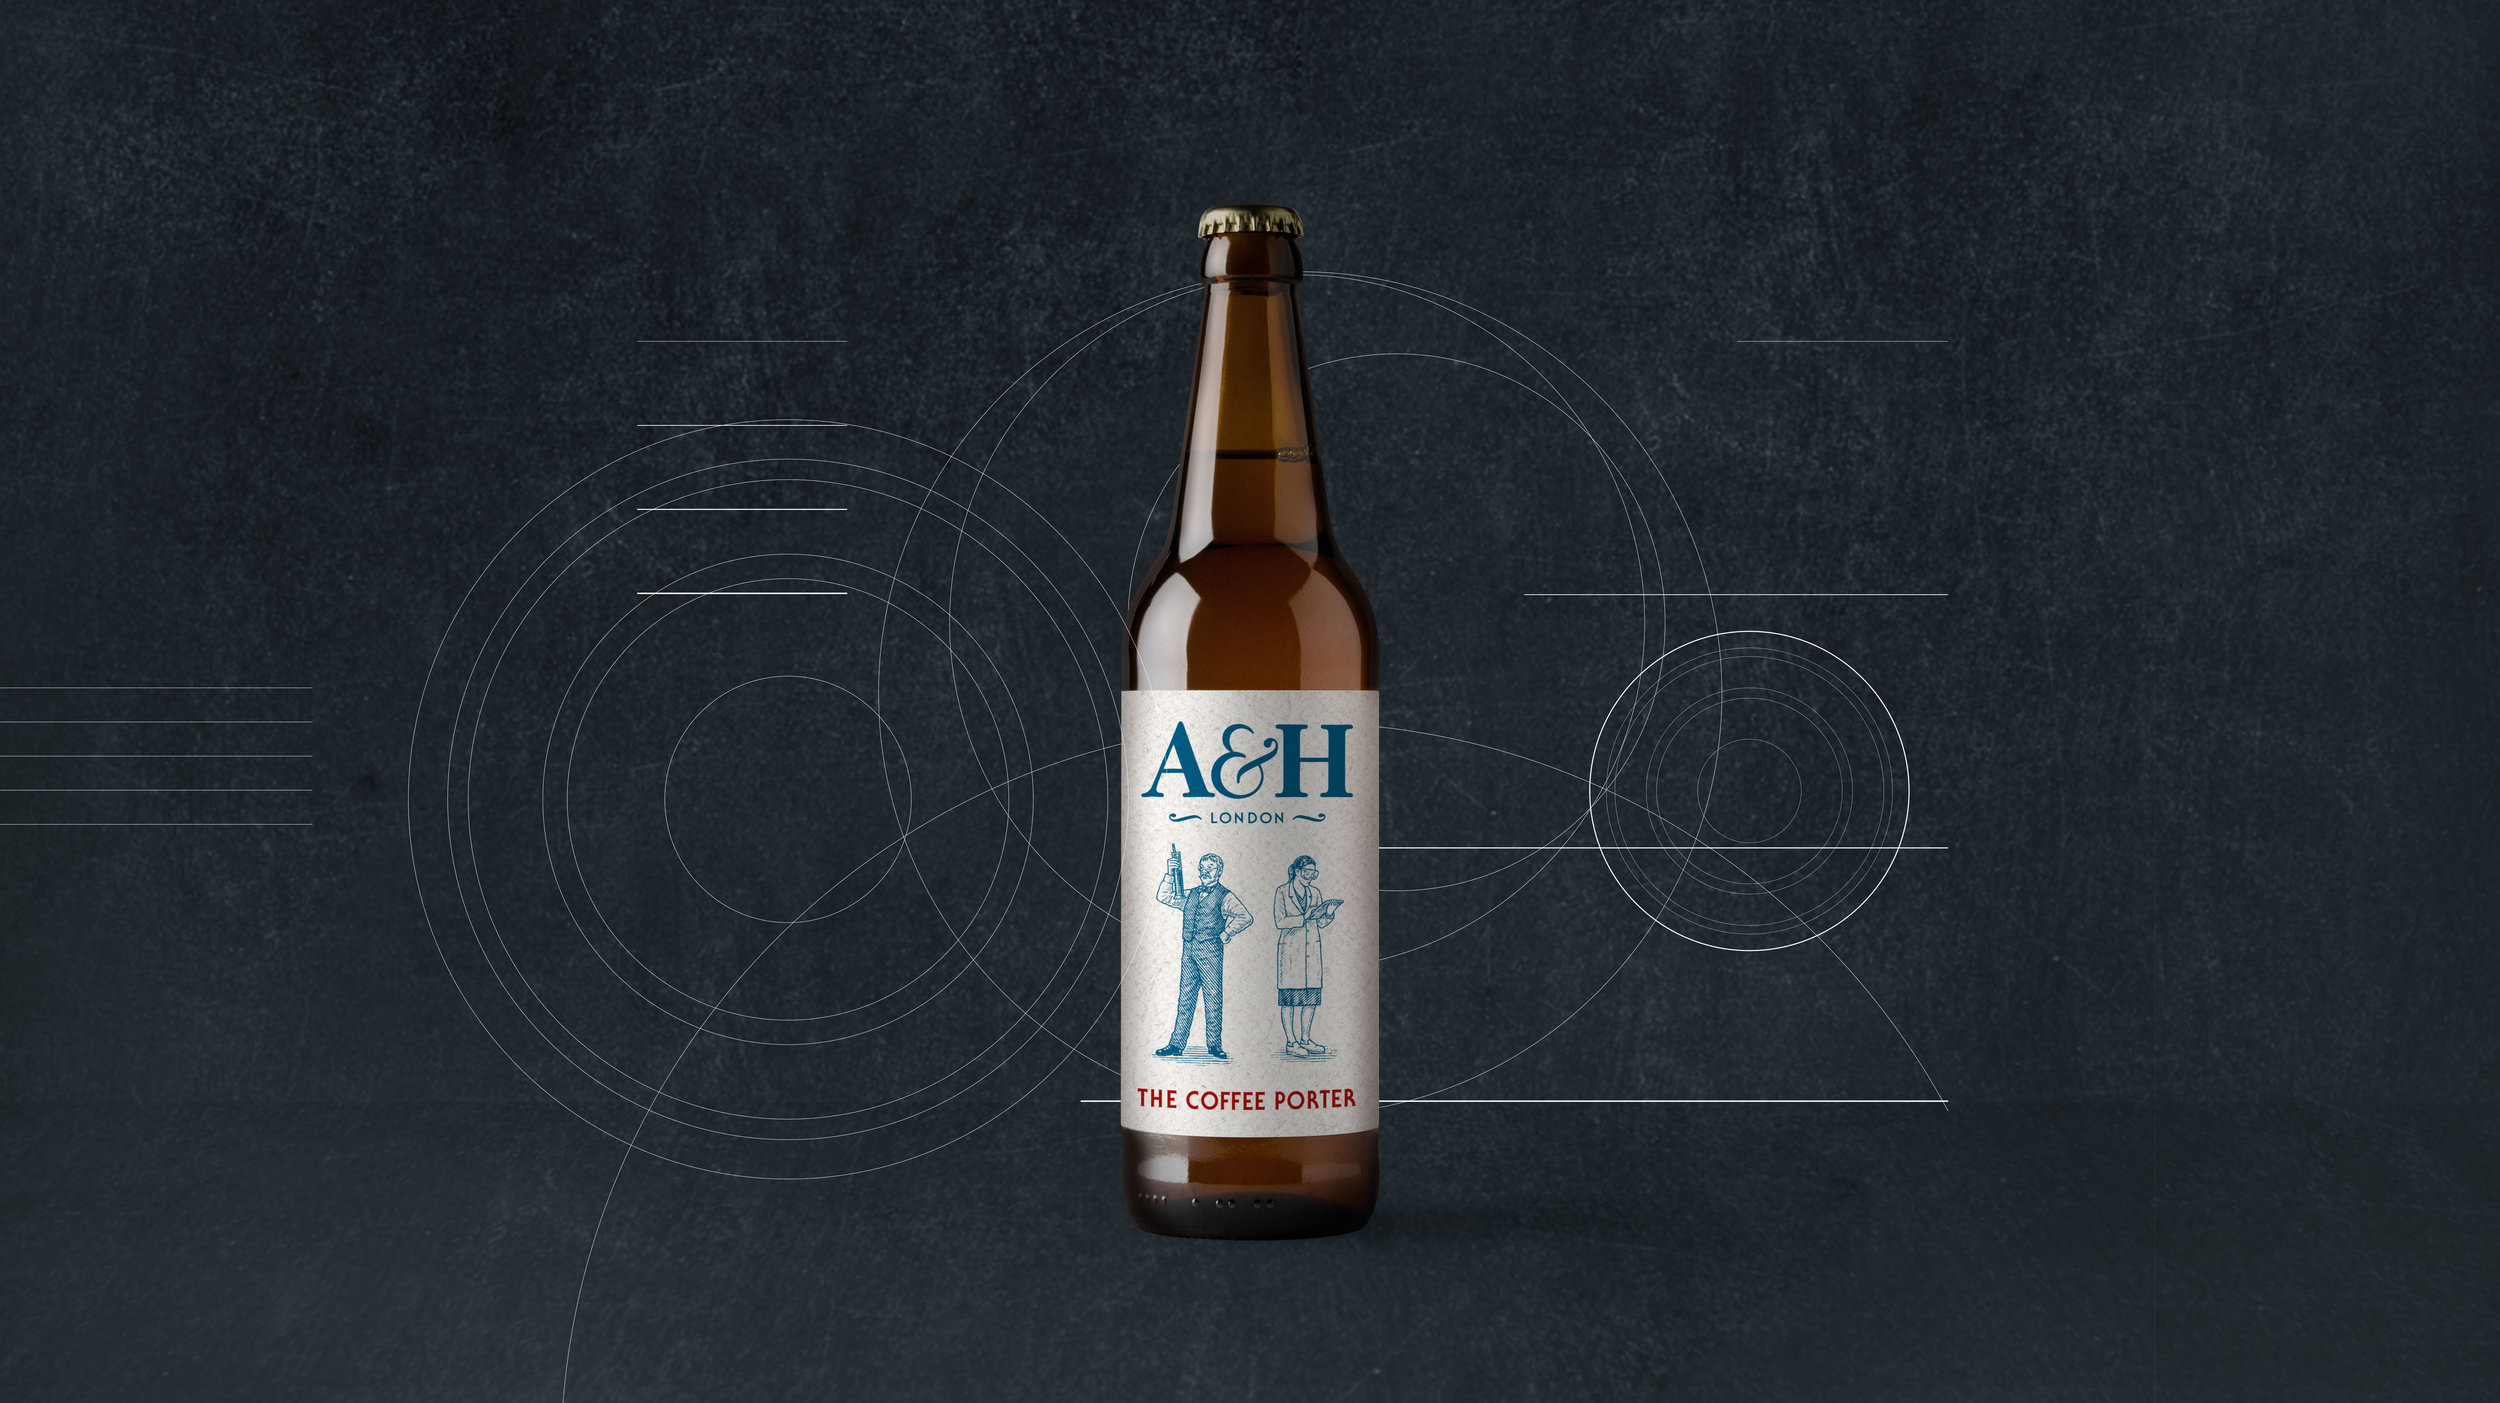 A&H_Bottle_Centred_ExperimentalRange_CoffeePorter.jpg